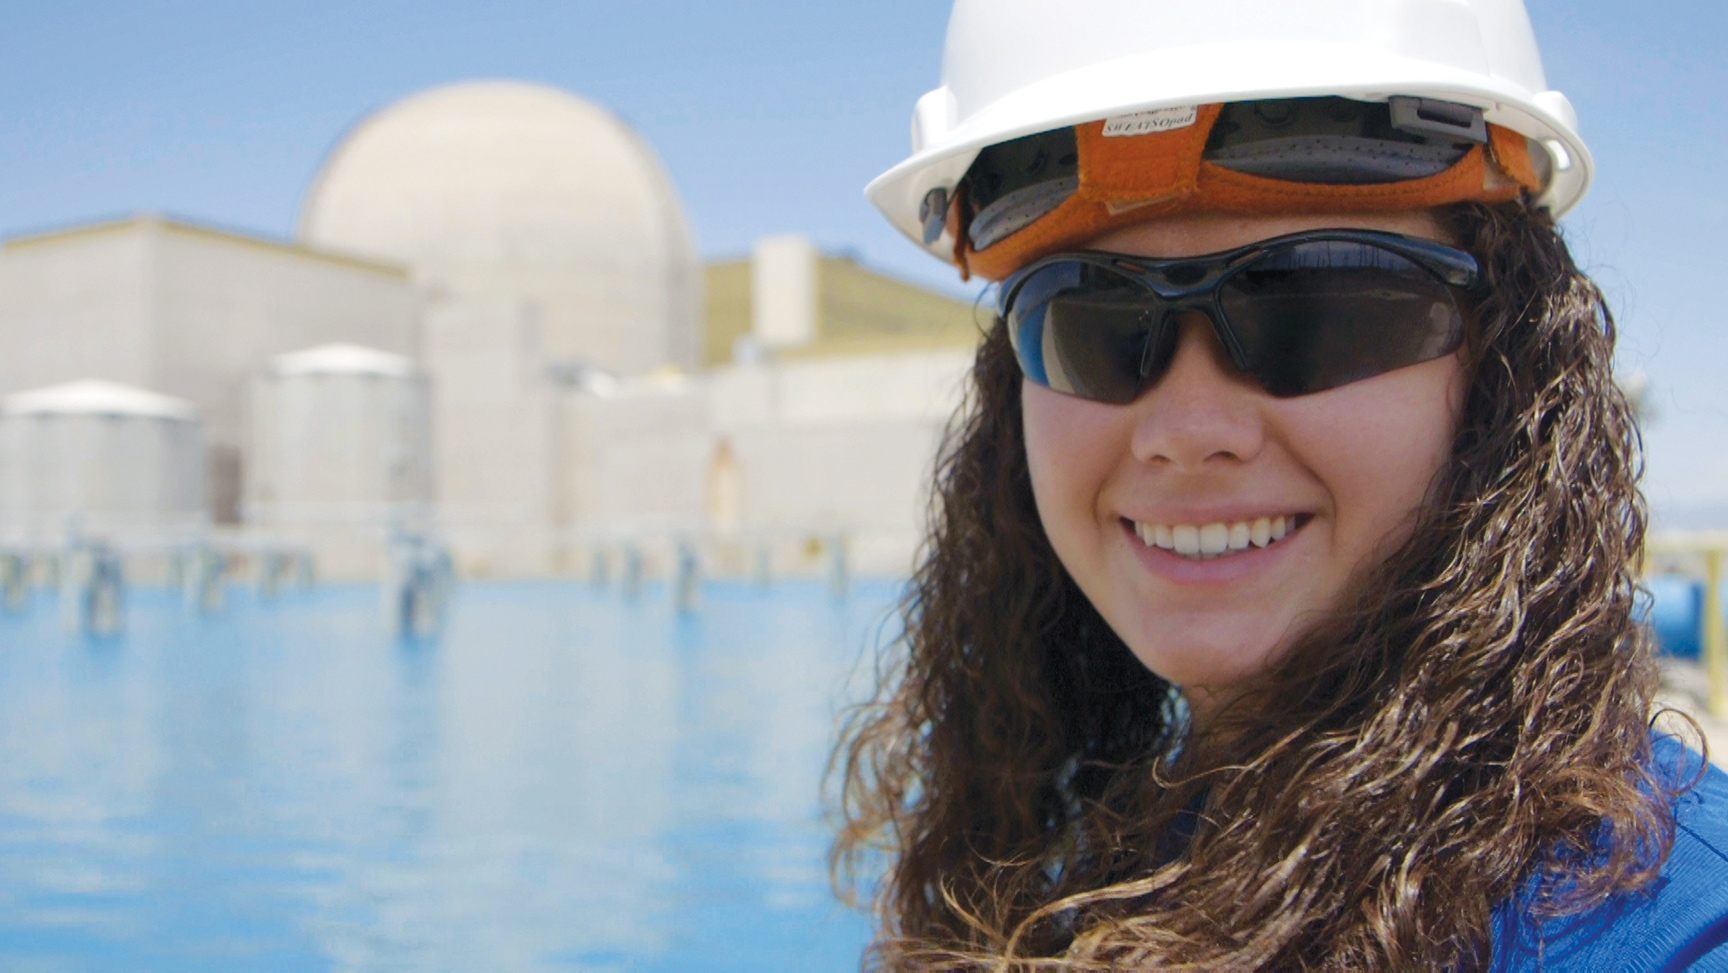 APS employee in protective glasses and a hard hat smiling in front of Palo Verde.